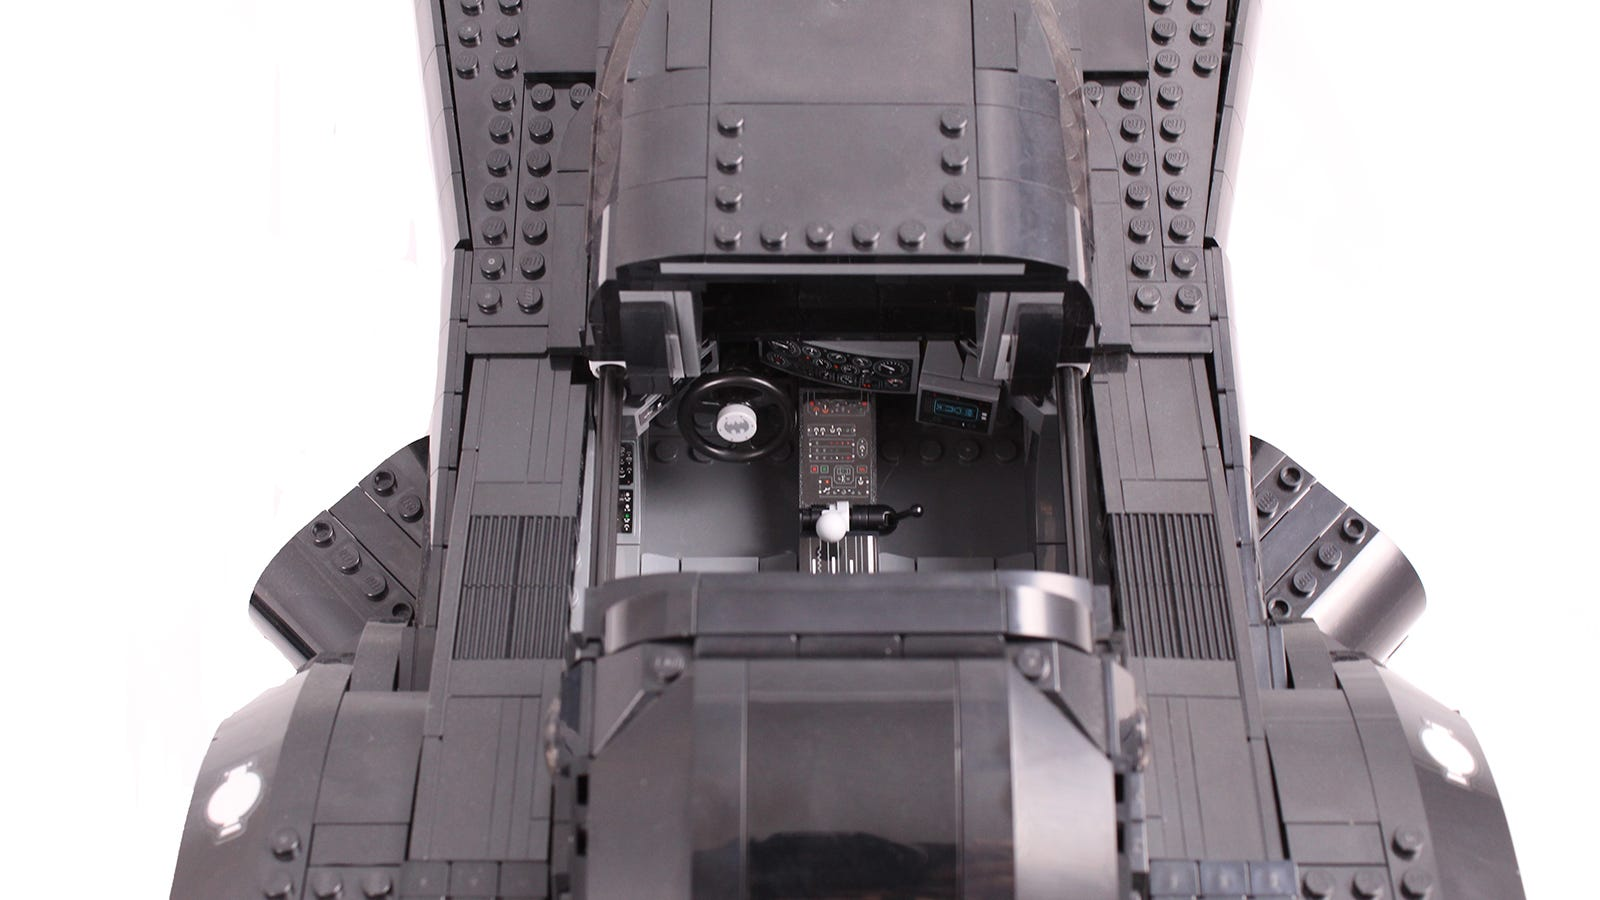 A top-down view of the Batmobile cockpit.